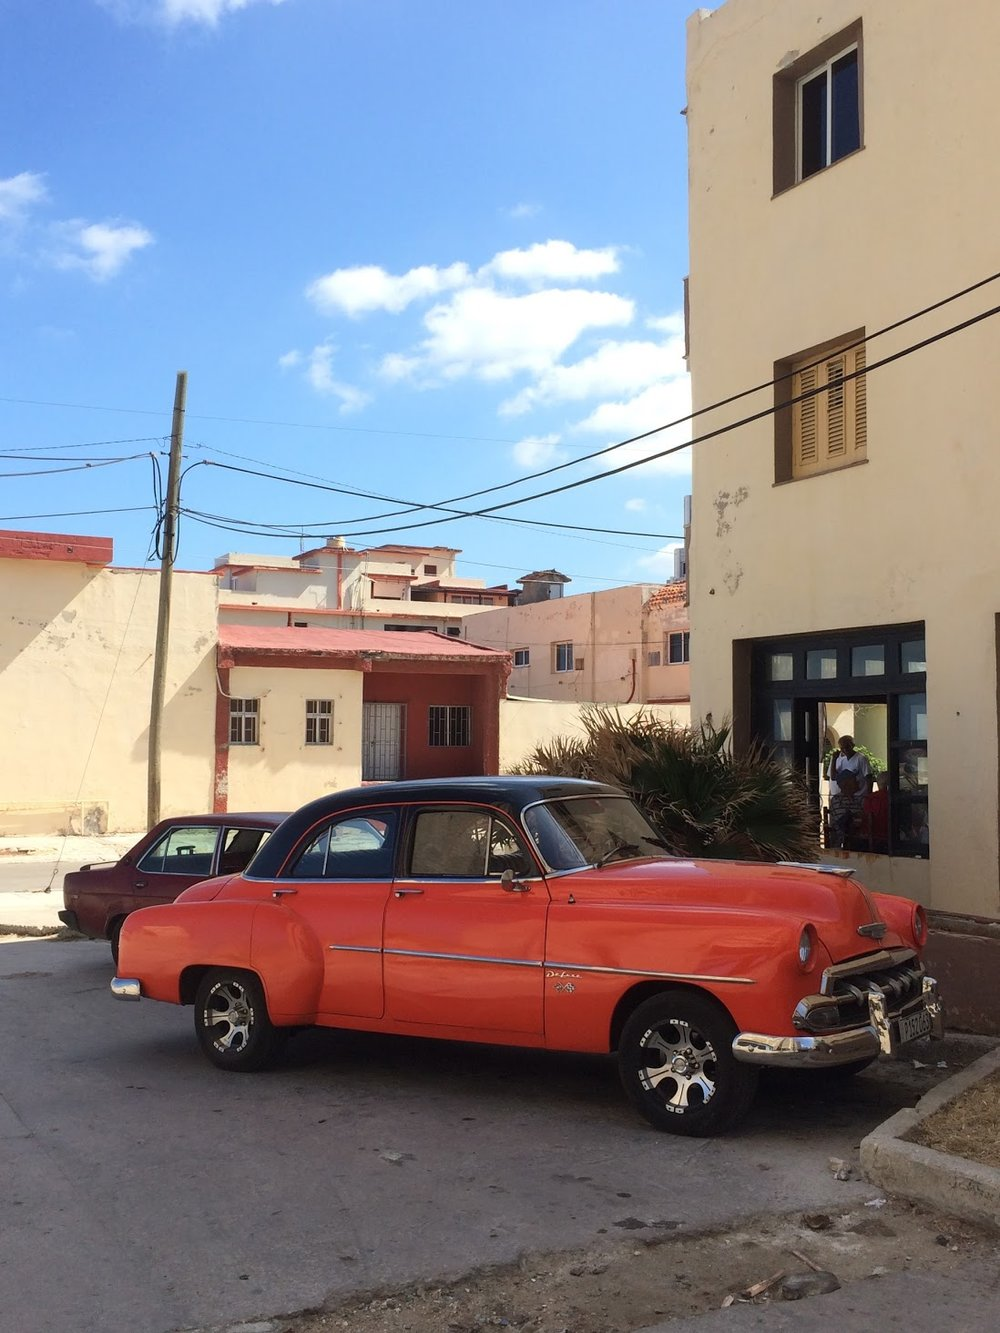 One of the many 50's American-style taxis in Cuba.